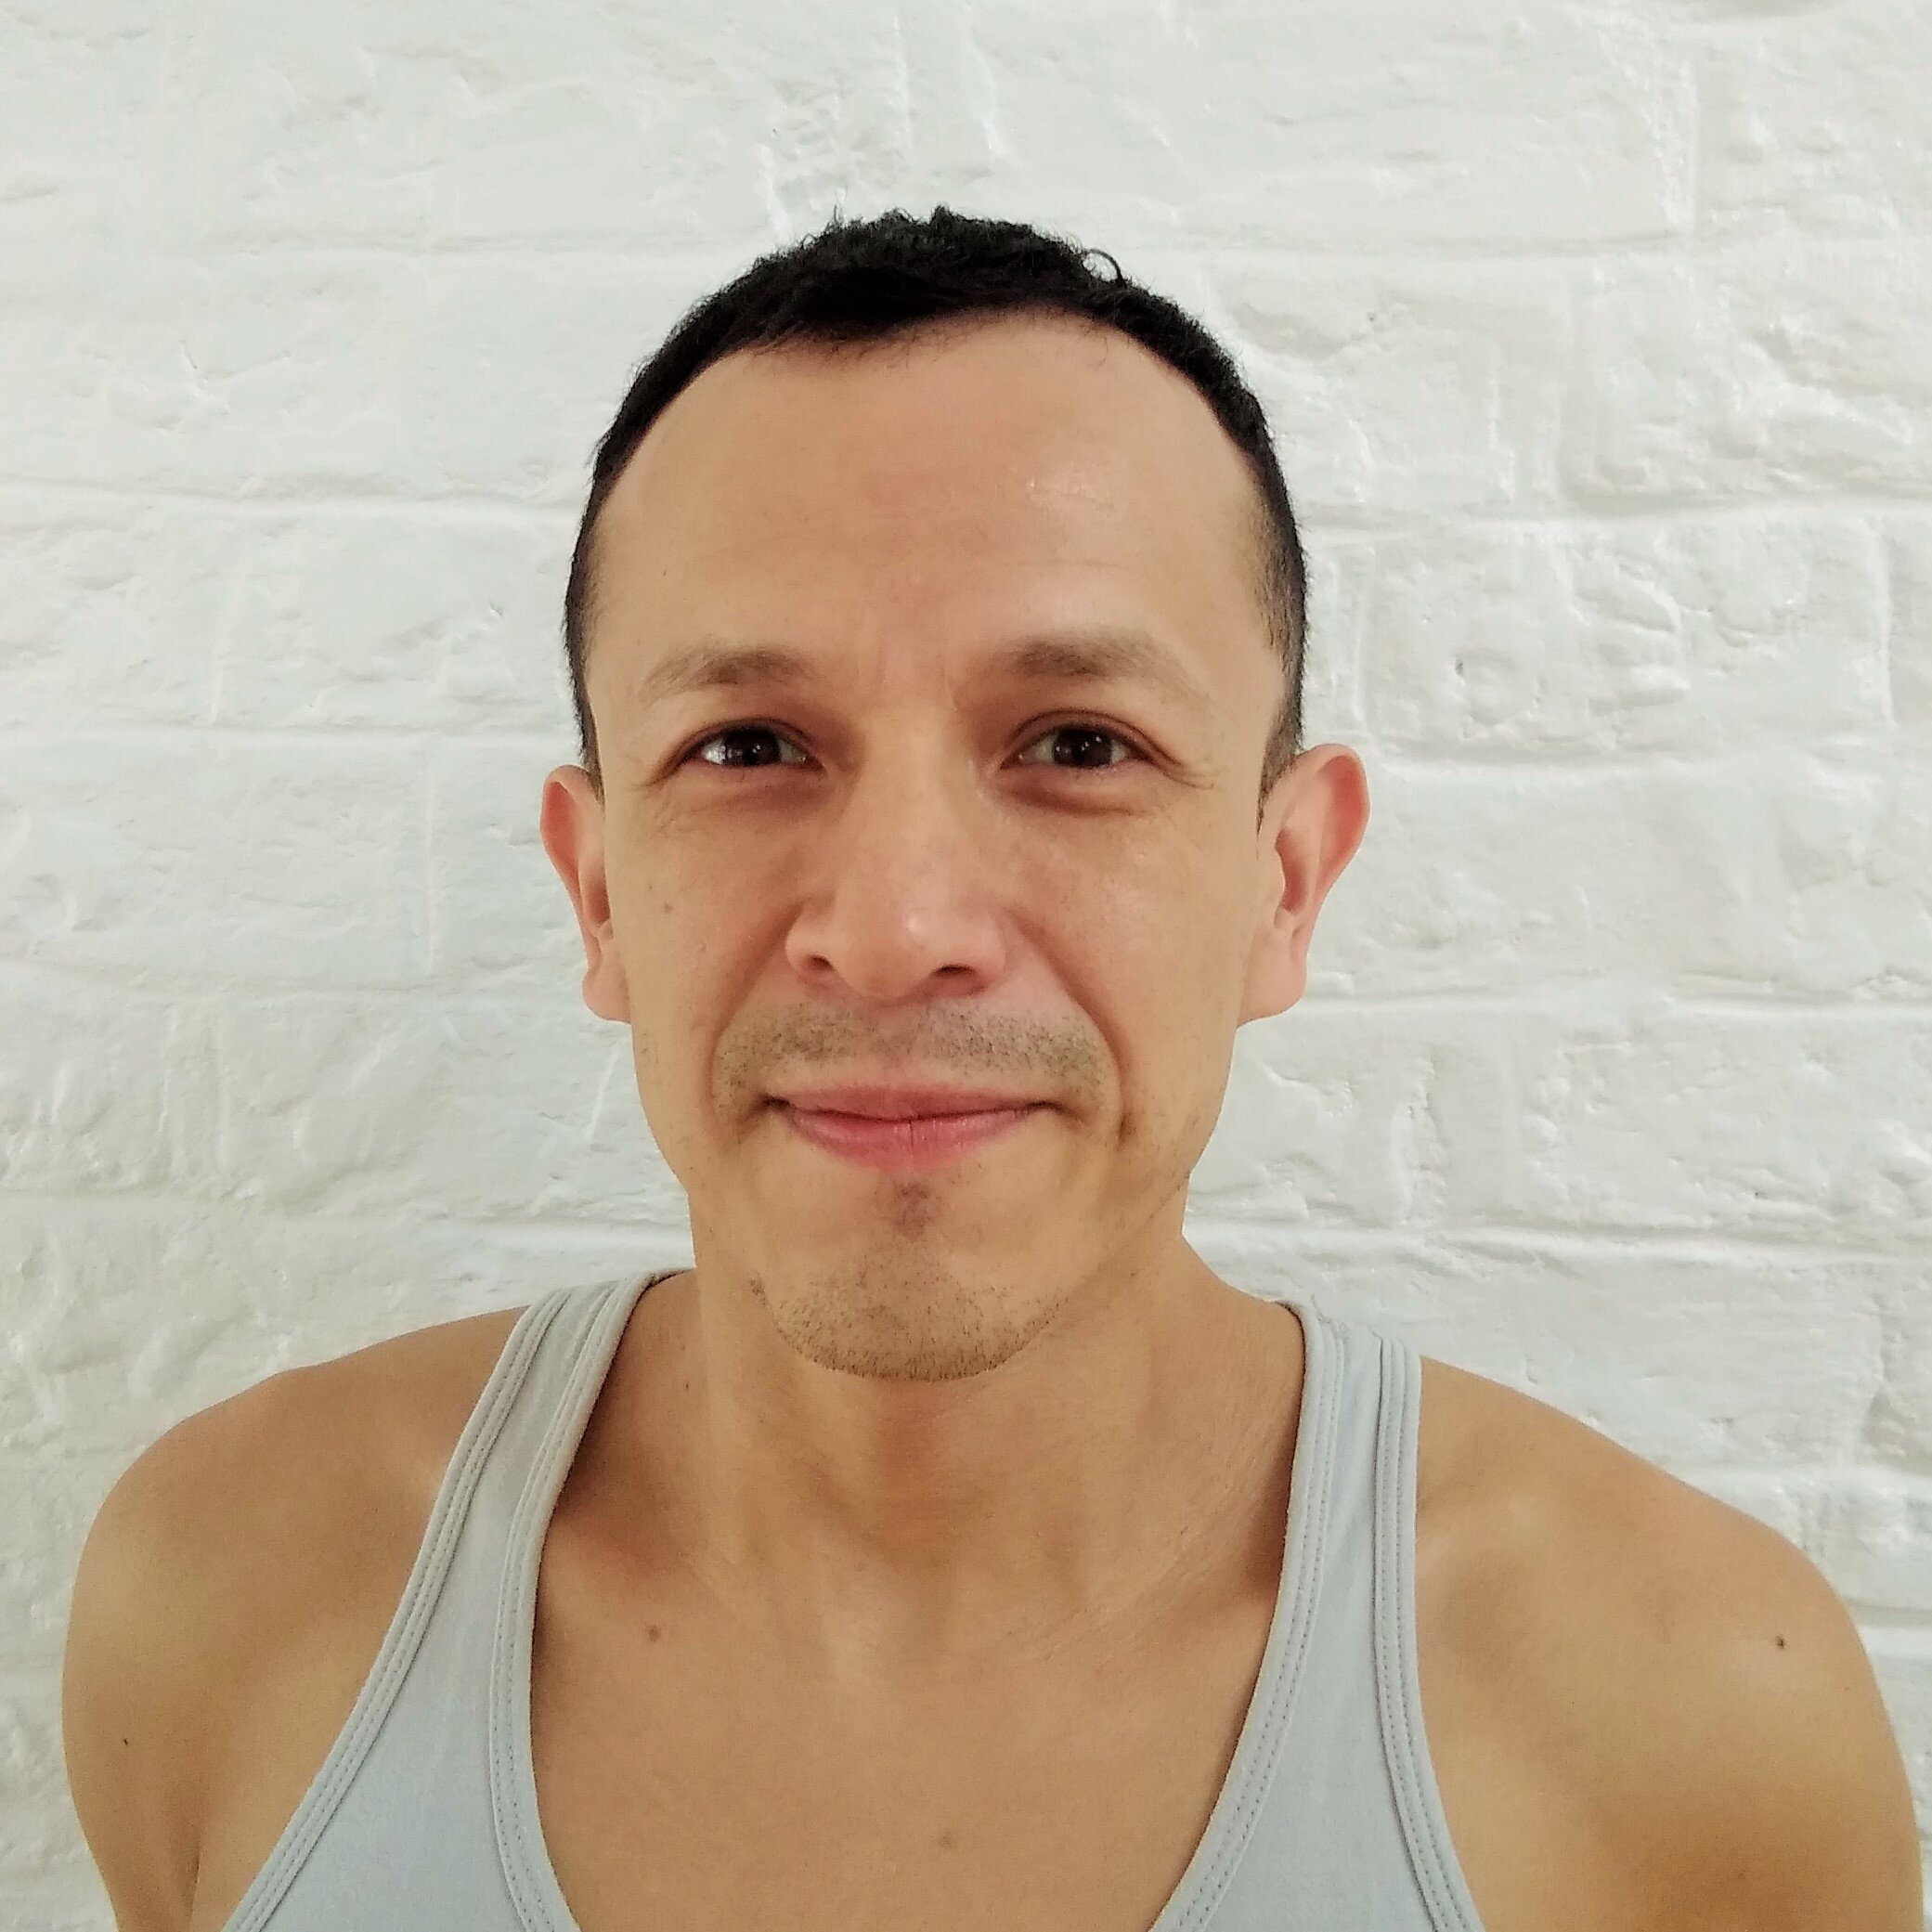 ANTONIO BLANCO   Antonio first encountered Yoga in 1997 in Mexico, and was instantly drawn by the effects of its practice - which differed greatly to what he had previously experienced in competitive sports.  After earning his certification with the British wheel of yoga, Antonio continued to develop his teaching and, with the mentoring of his teacher Alaric Newcombe, he earned his Introductory level 1 and 2 certification in Iyengar yoga in 2018.  Antonio teaches in a lively yet precise and thorough manner, encouraging clarity, and a bit of joy!